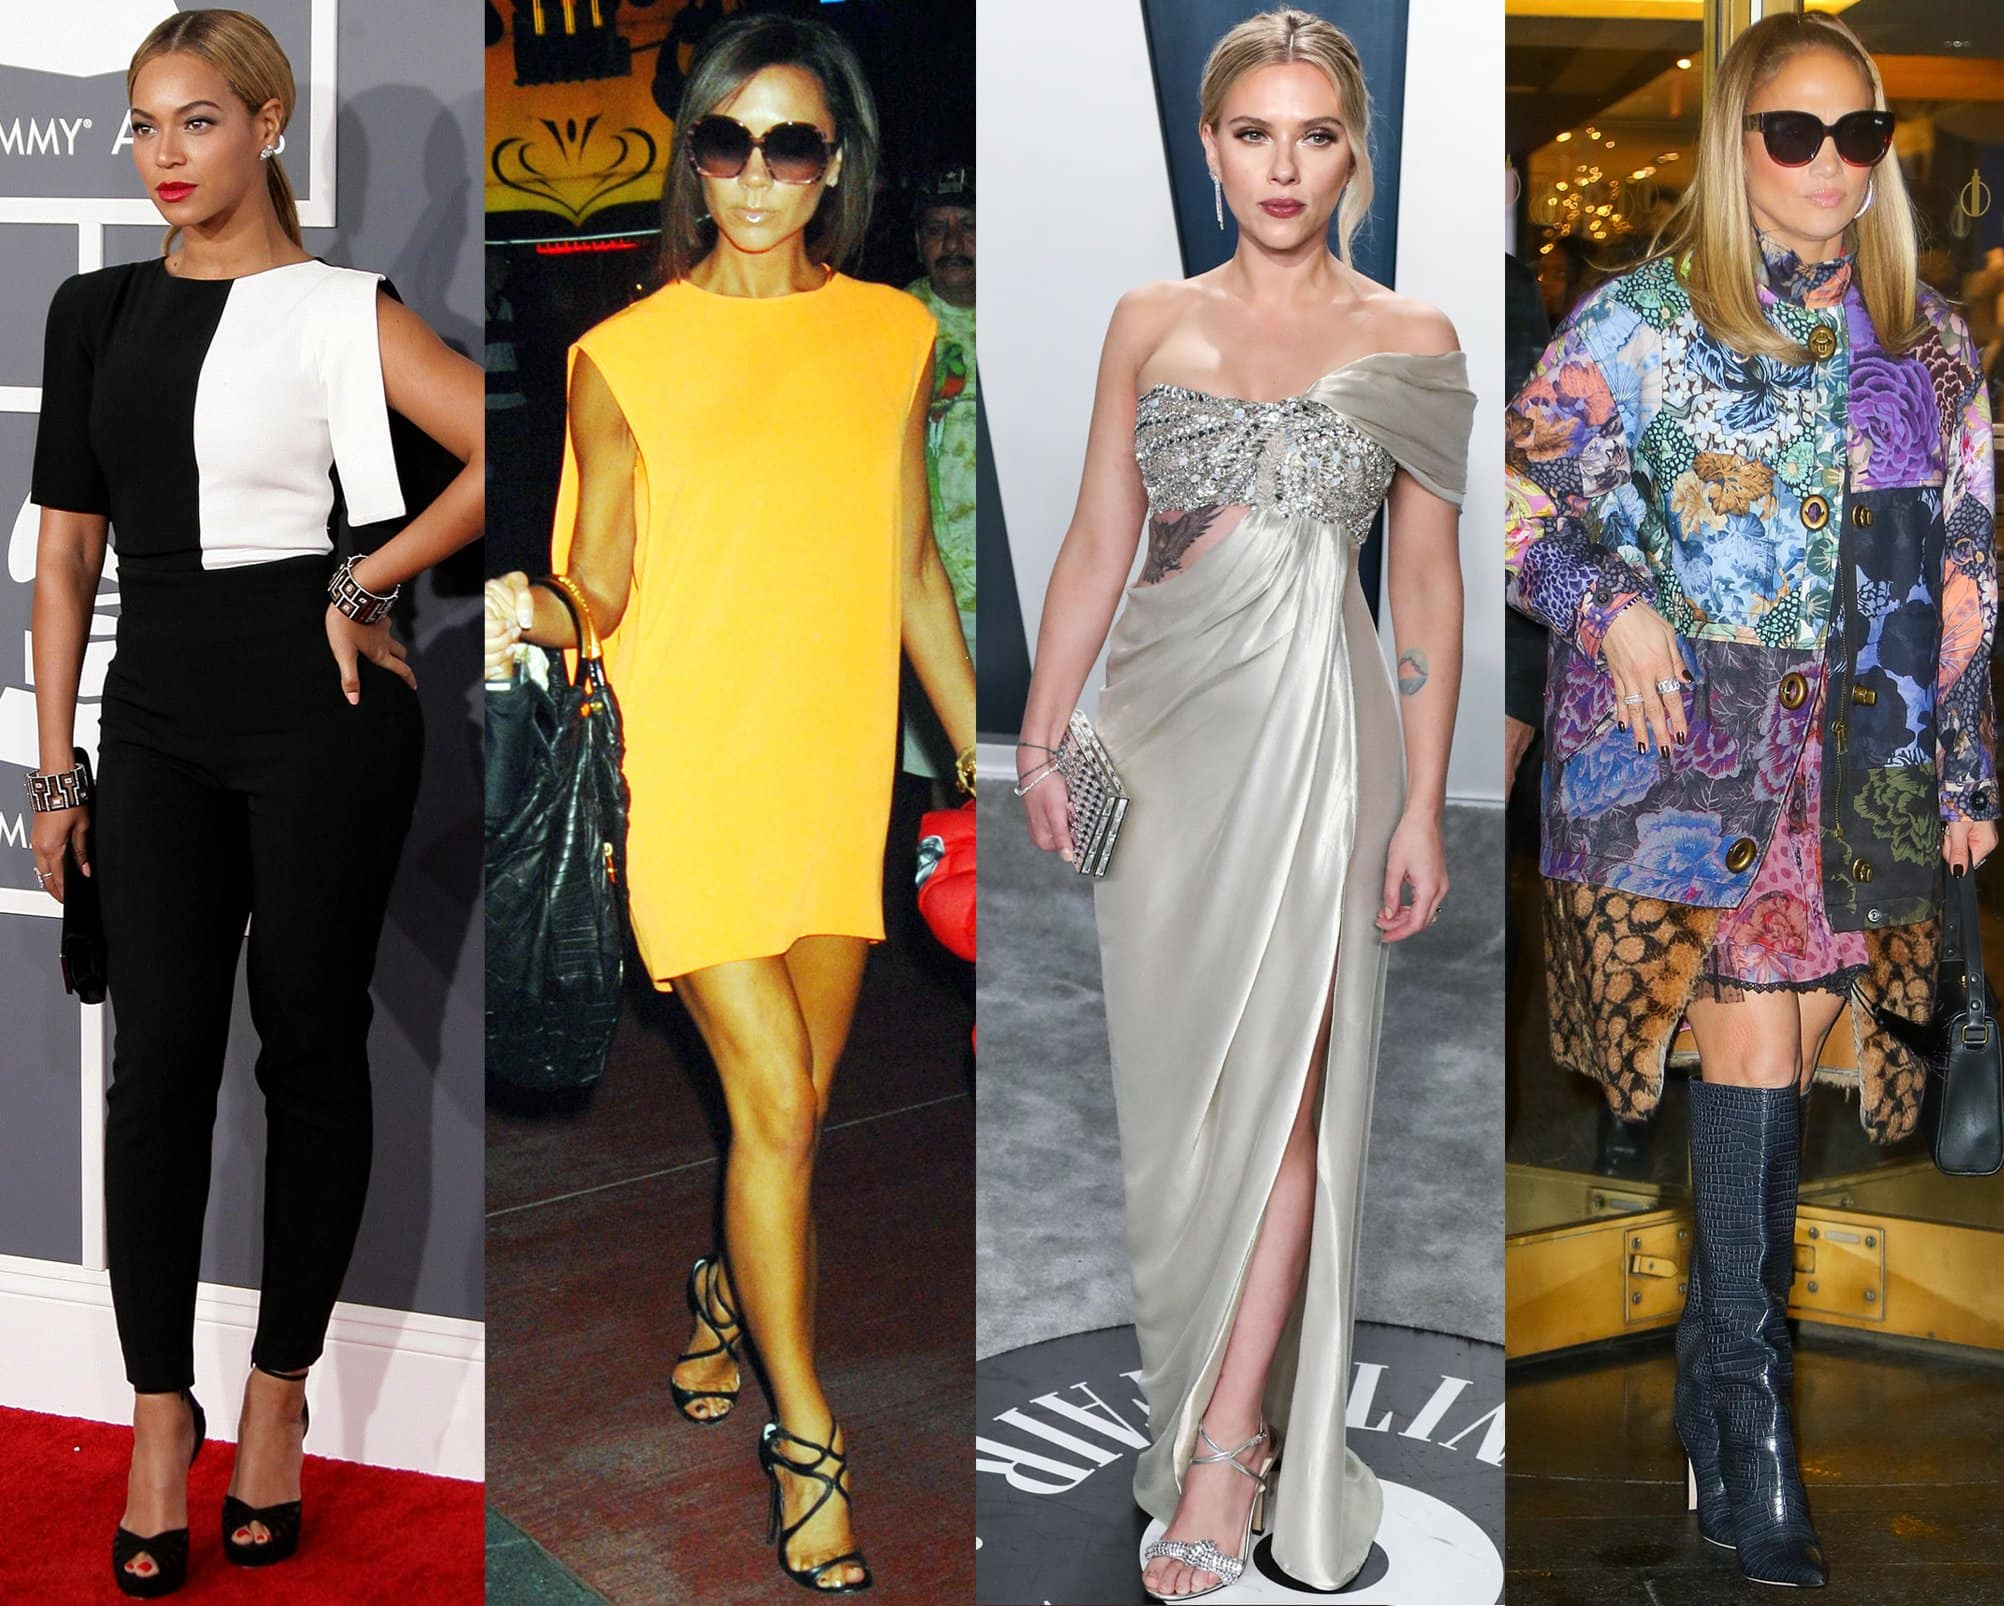 Beyonce, Victoria Beckham, Scarlett Johansson, and Jennifer Lopez are just some of the many celebrity fans of Jimmy Choo